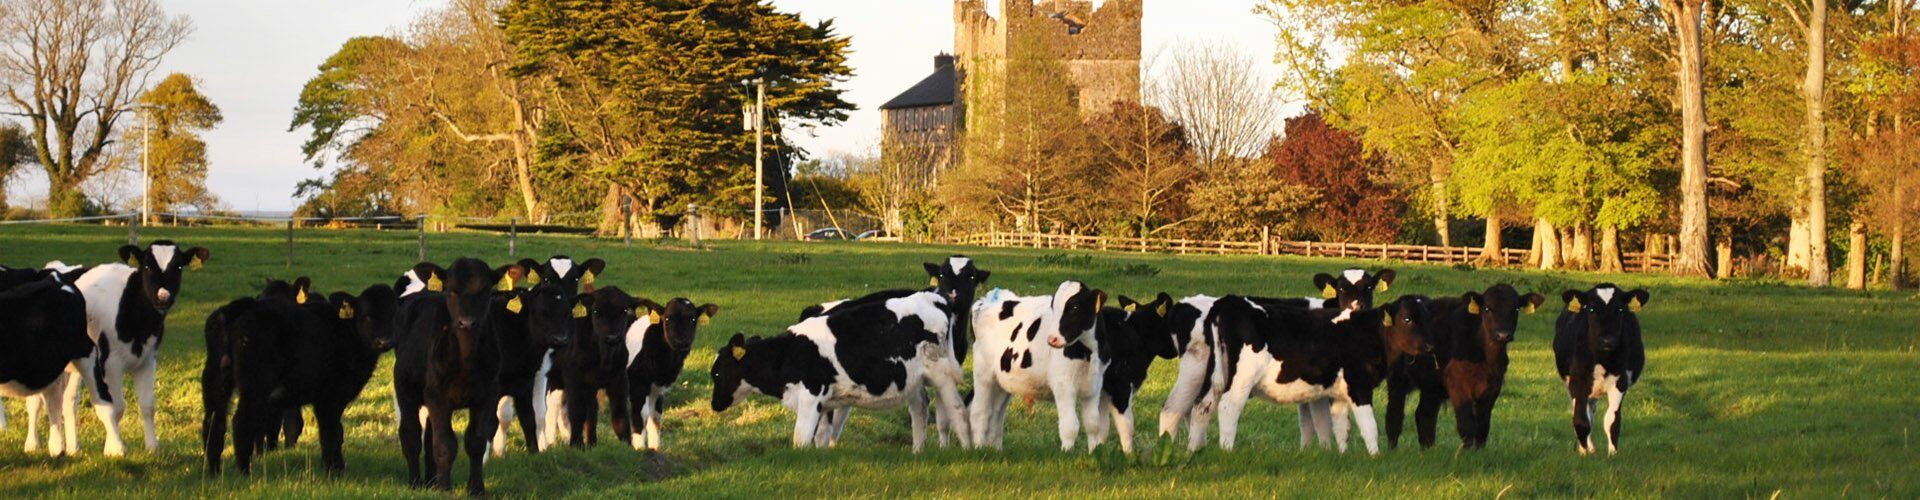 cows grazing afternoon sun wexford